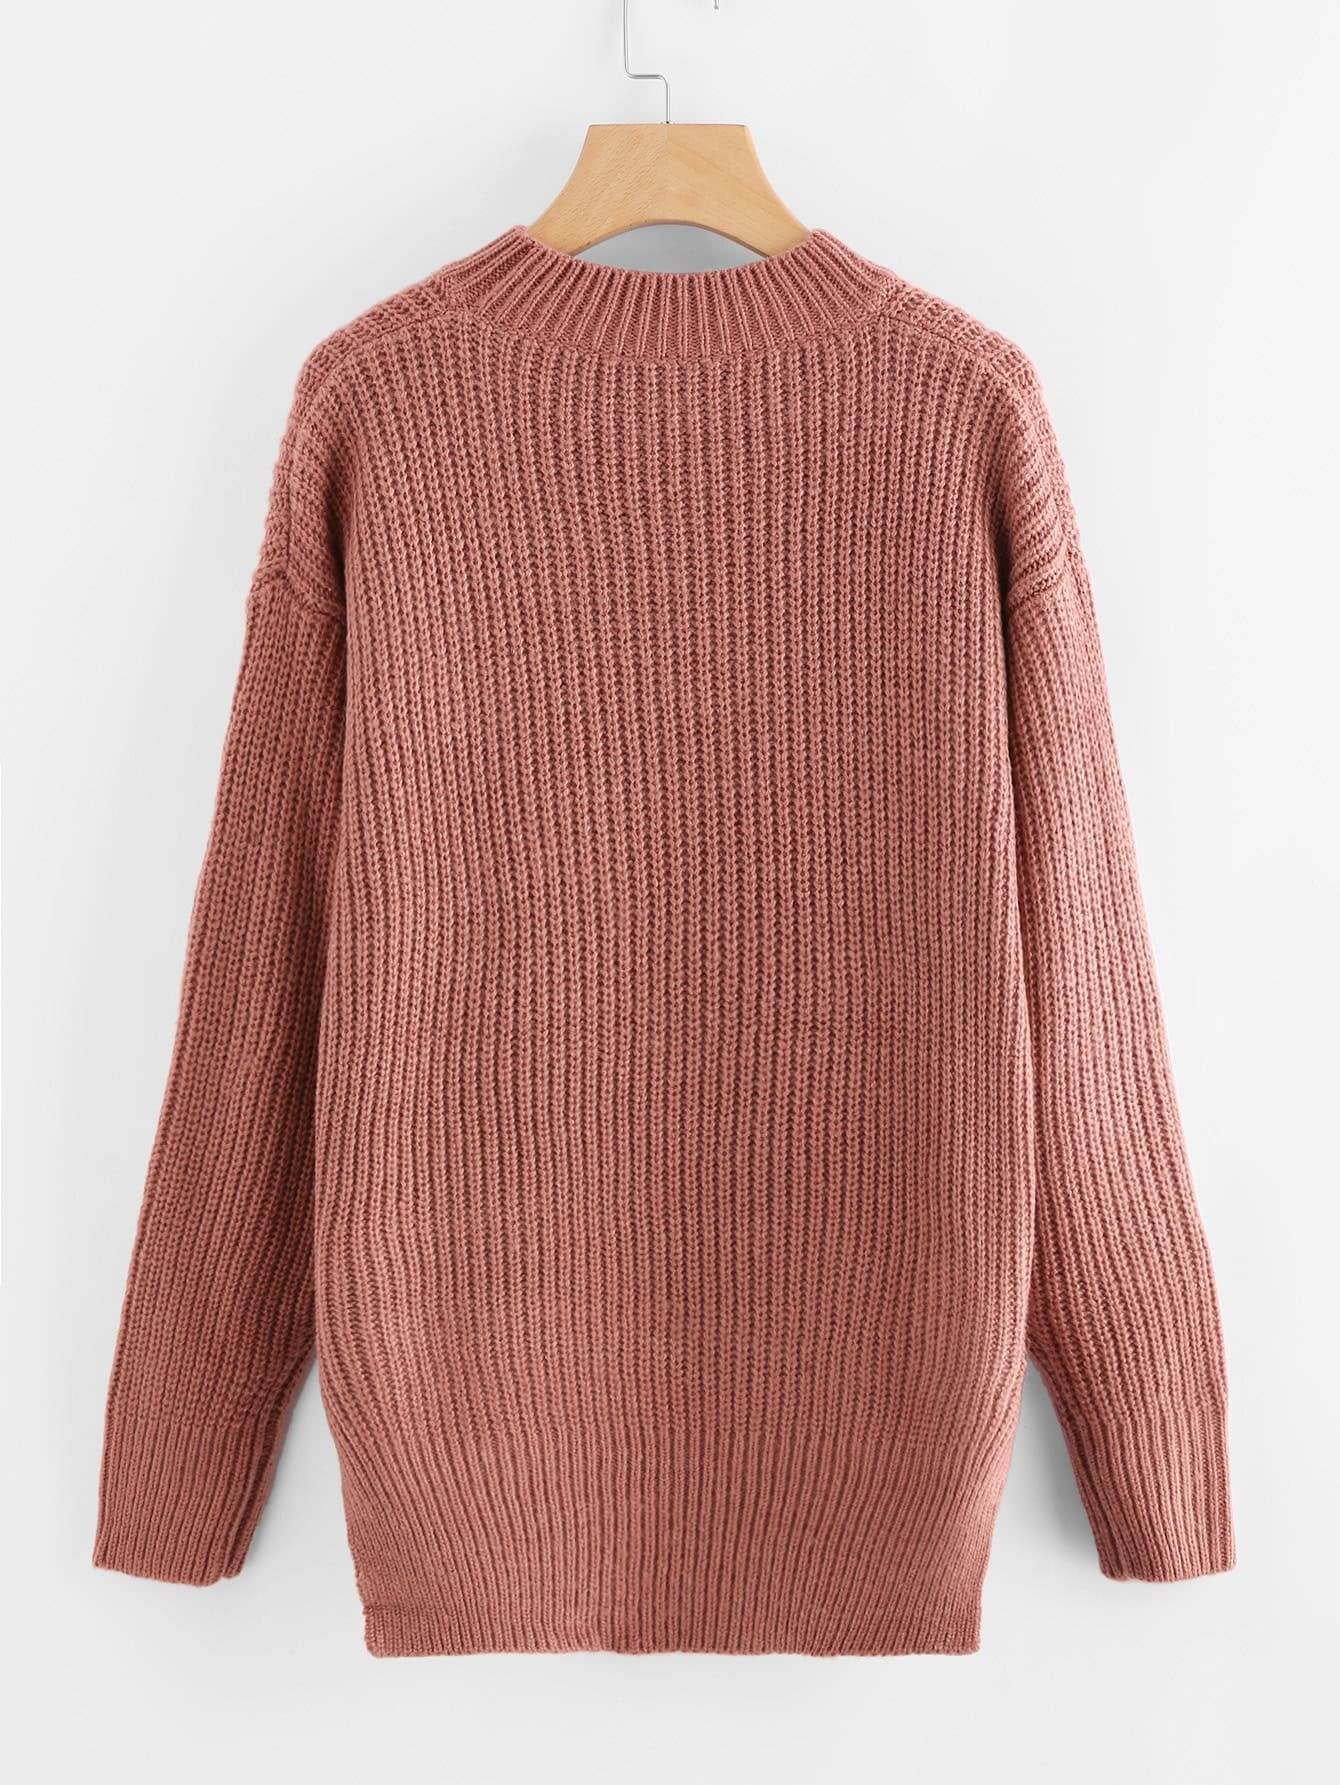 Brick Red Embroidered High Low Chunky Knit Sweater -SheIn(Sheinside)